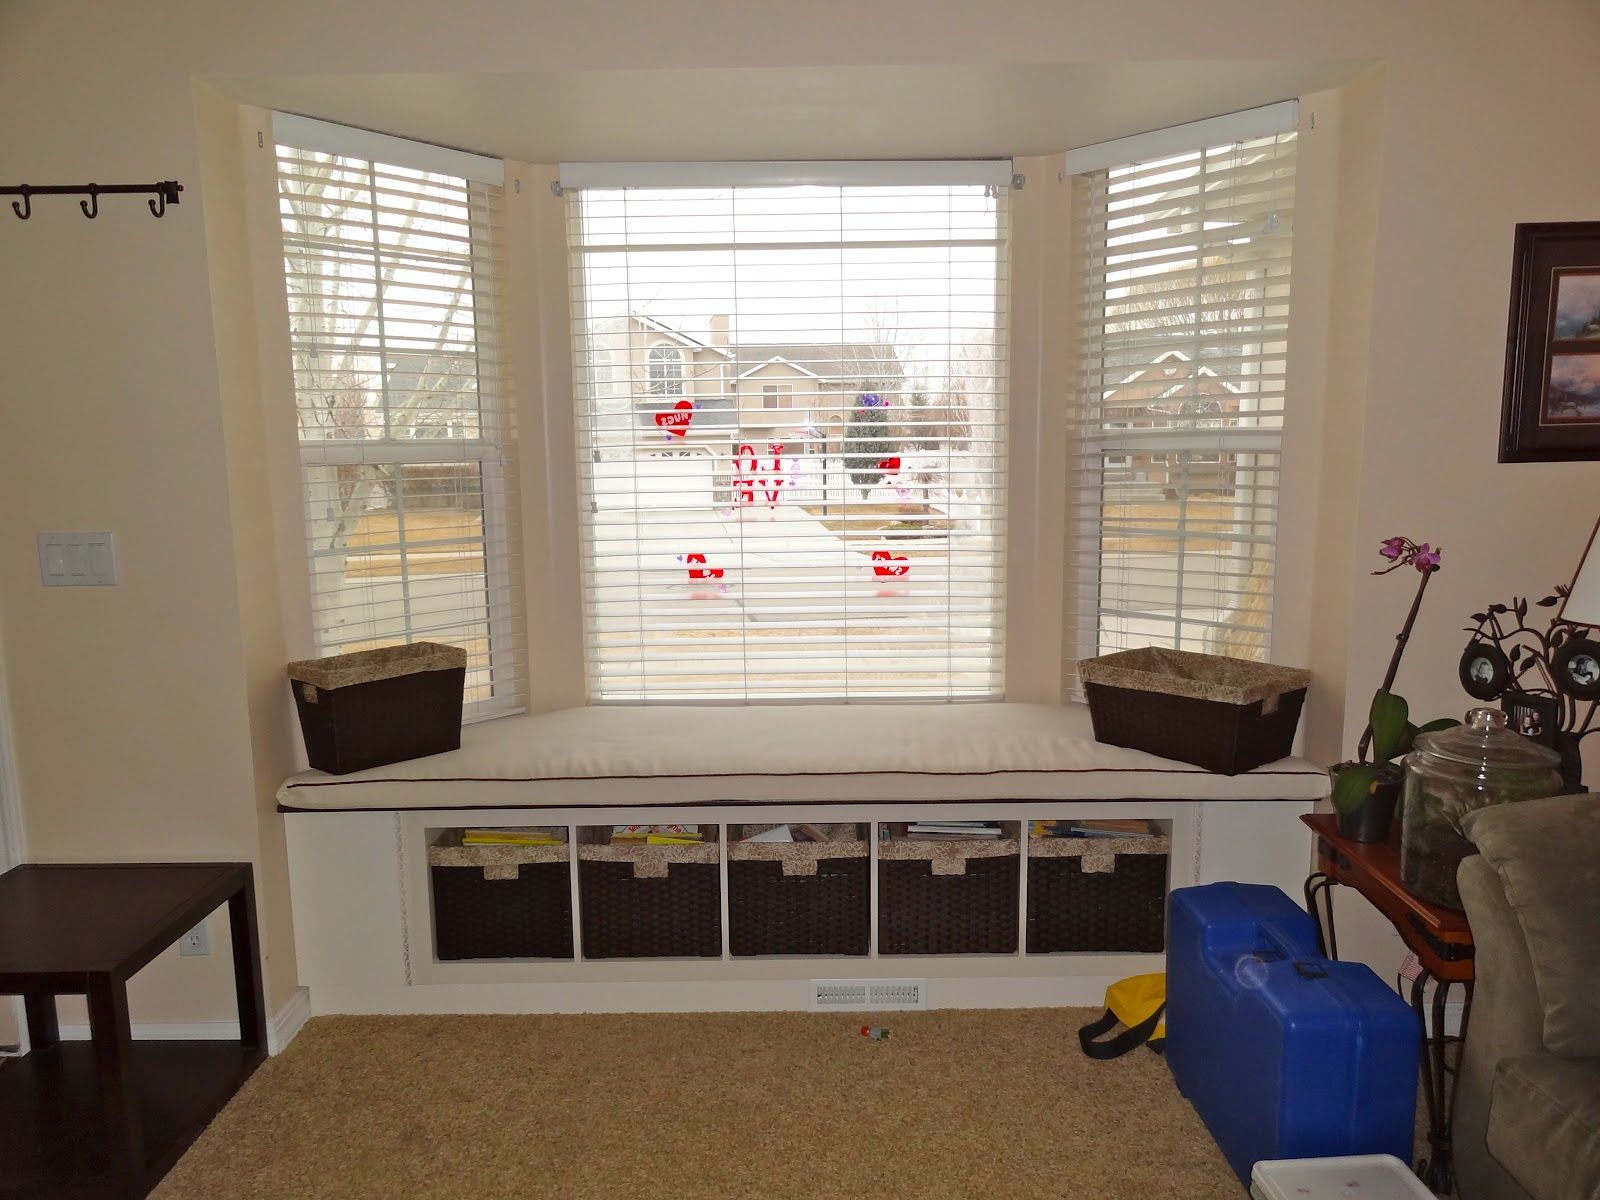 Bay window with window seat treatments - 17 Cozy Window Seat Designs With Extra Storage Space